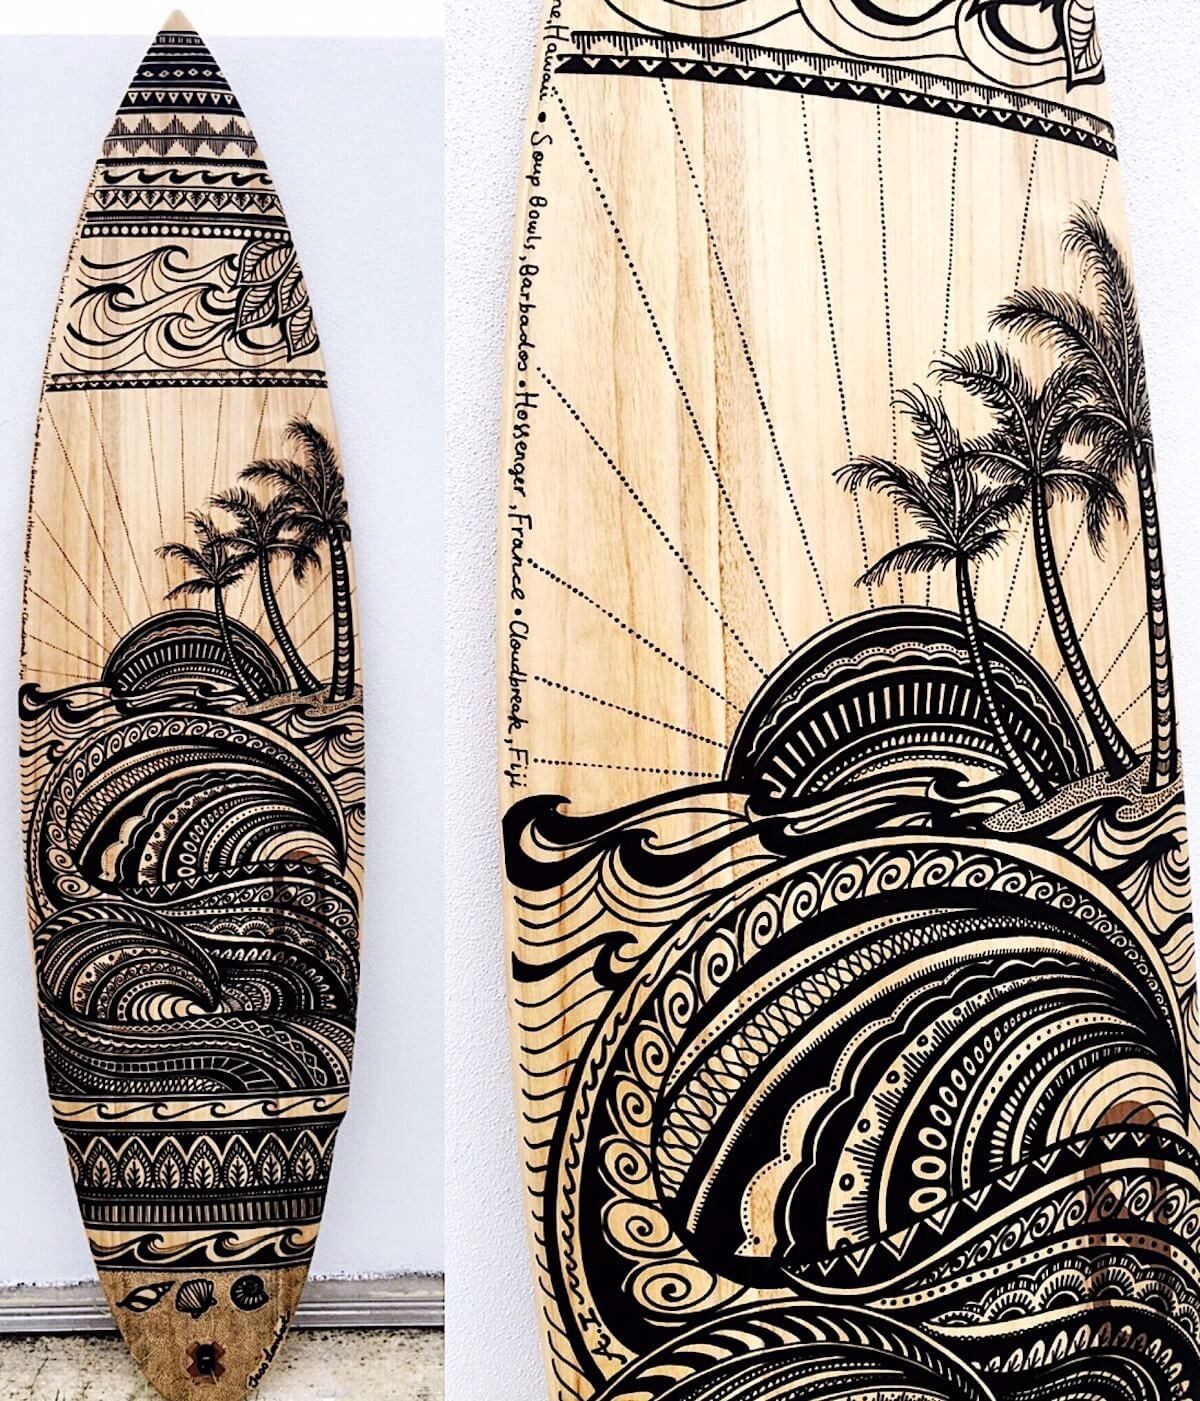 Surfboard Art Surfboard Art Surfboard Painting Surfboard Design